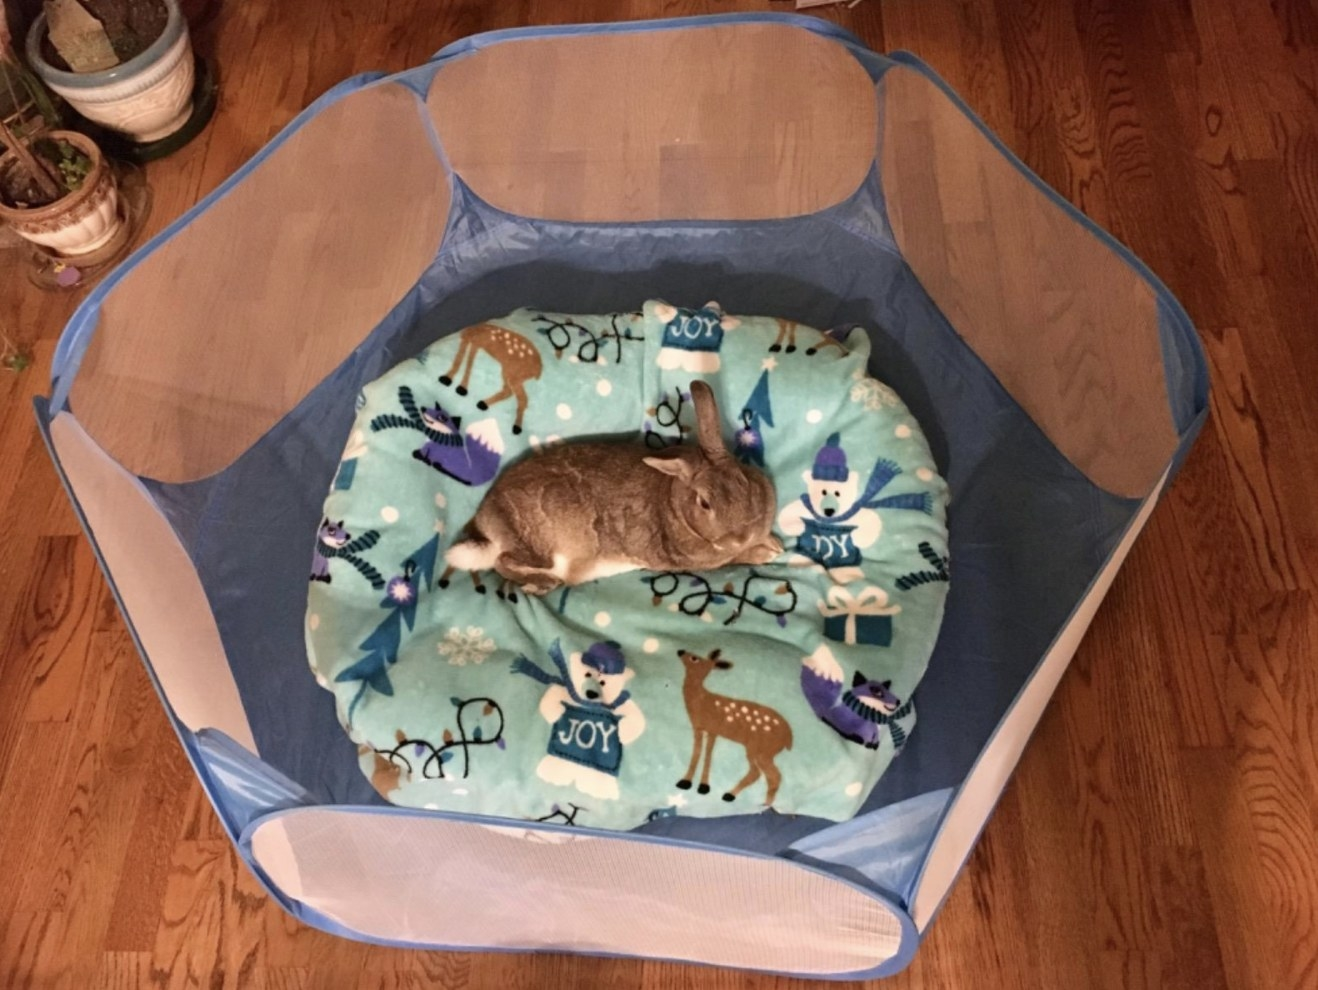 Reviewer's bunny in small open tent